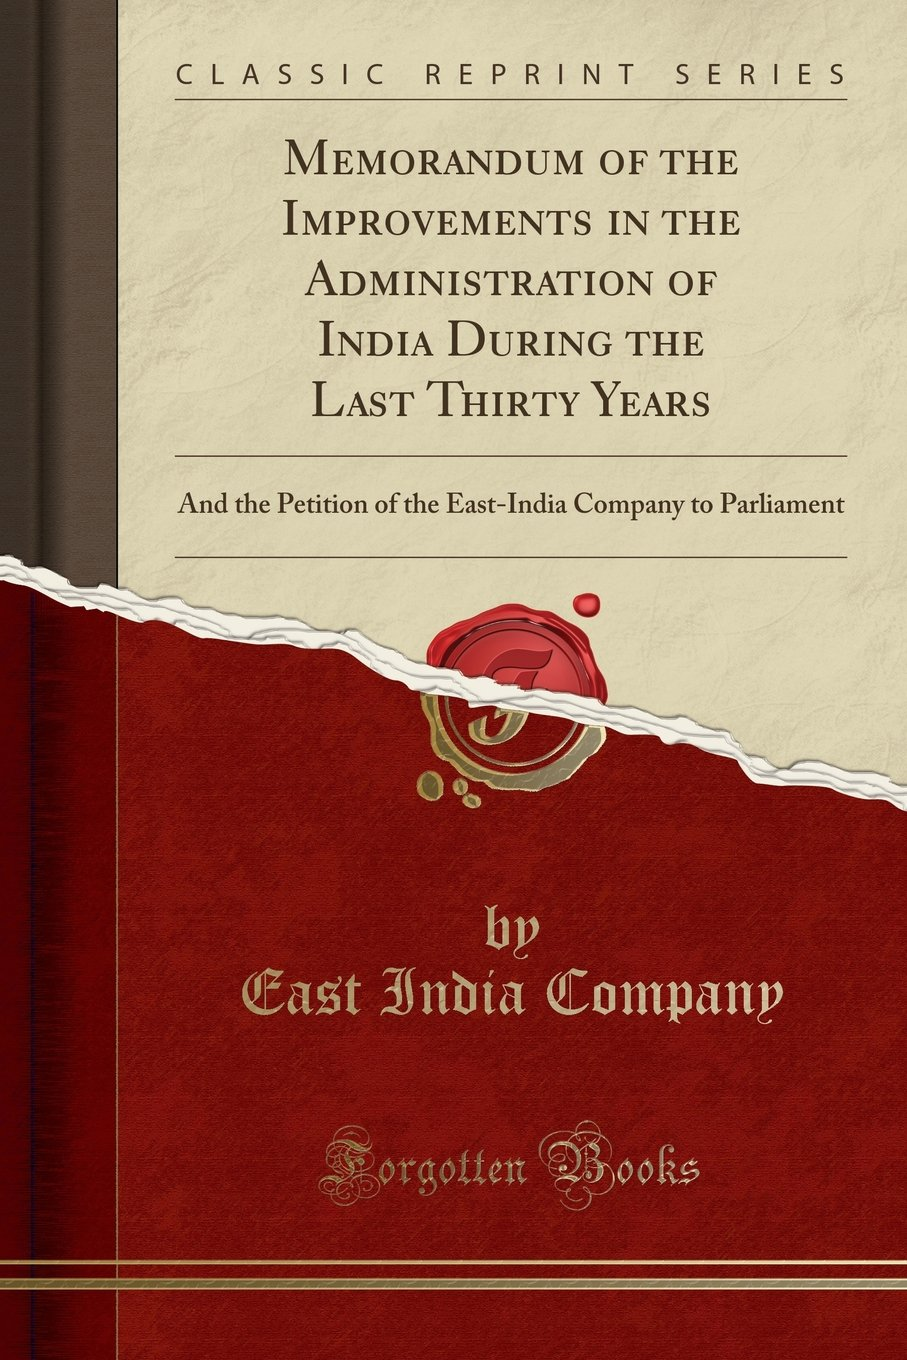 Download Memorandum of the Improvements in the Administration of India During the Last Thirty Years: And the Petition of the East-India Company to Parliament (Classic Reprint) PDF ePub fb2 book